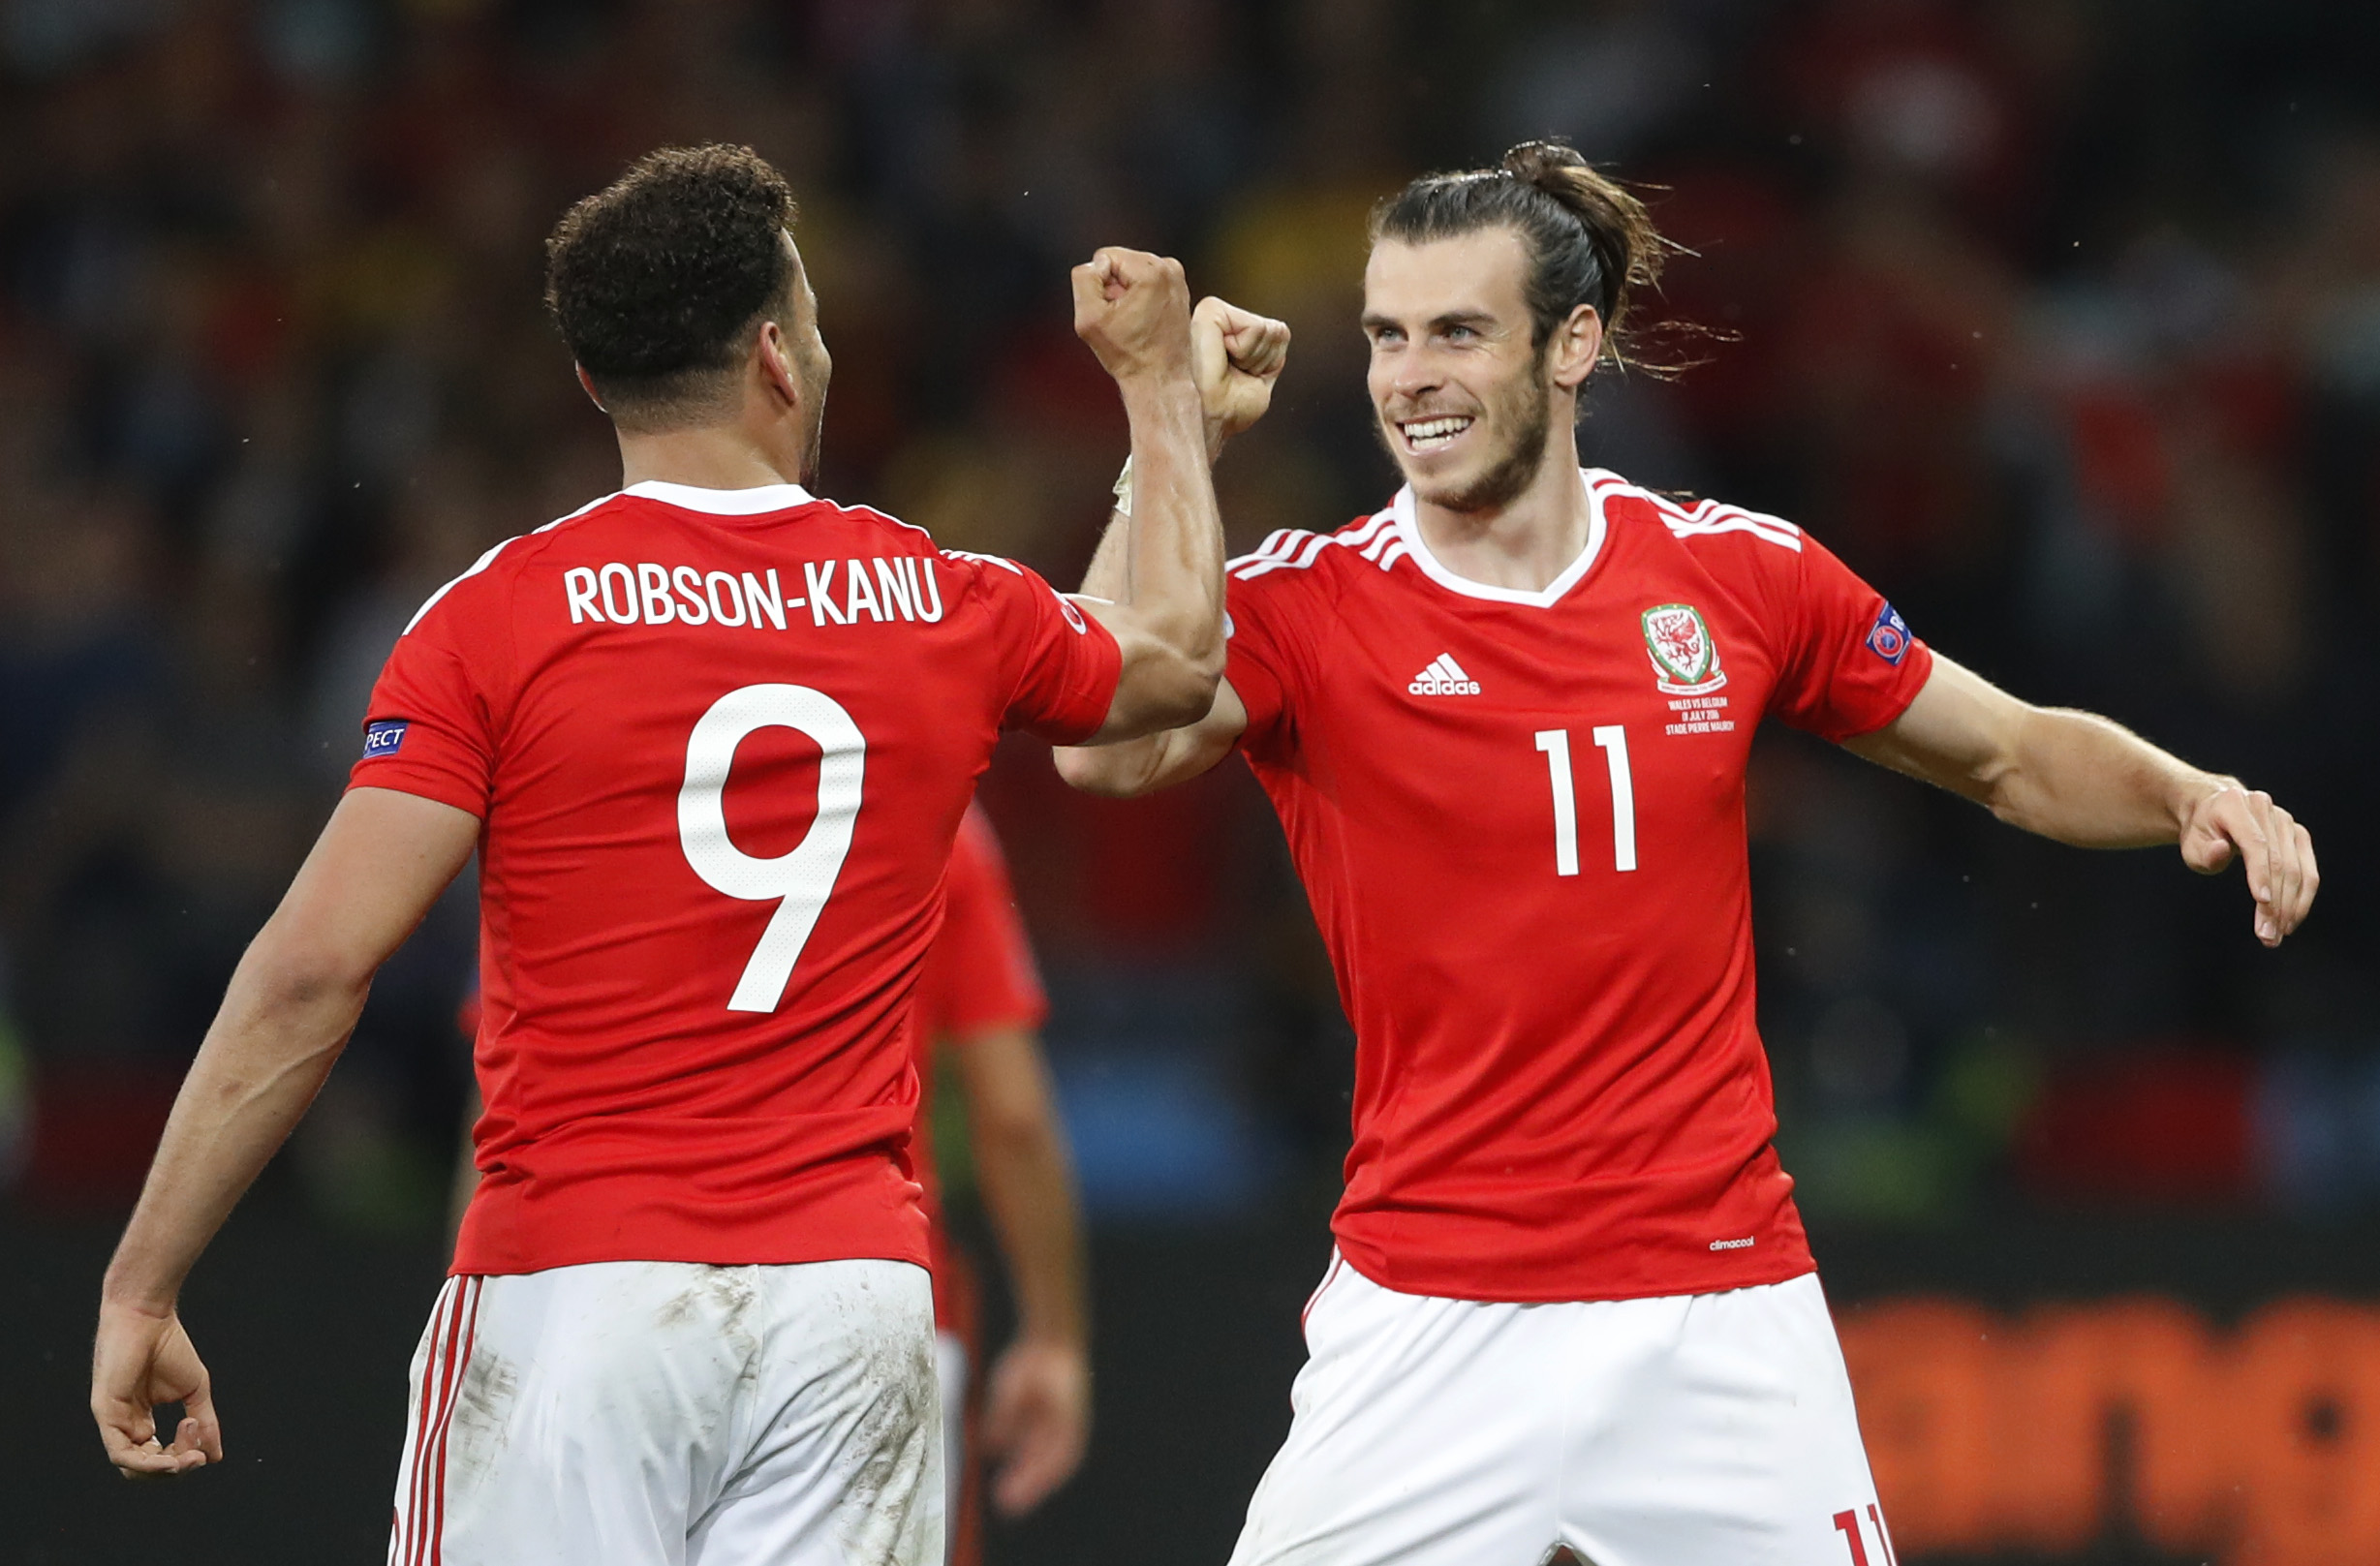 Football Soccer - Wales v Belgium - EURO 2016 - Quarter Final - Stade Pierre-Mauroy, Lille, France - 1/7/16 Wales' Hal Robson-Kanu celebrates with Gareth Bale after scoring their second goal REUTERS/Carl Recine Livepic